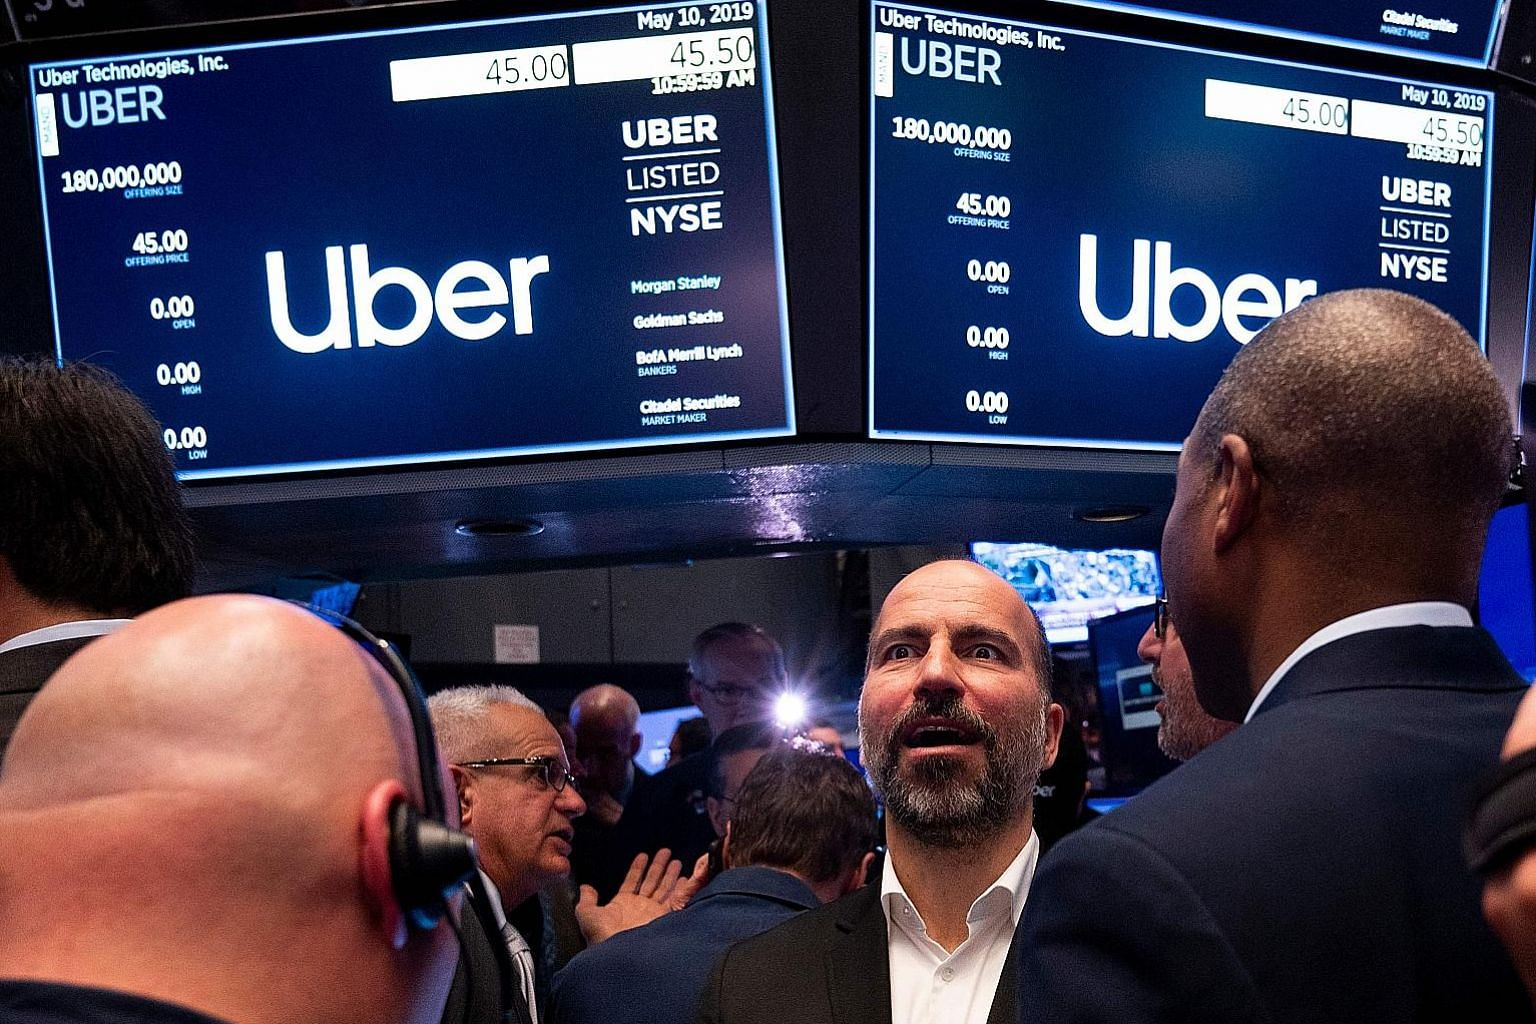 Uber made its debut on the New York Stock Exchange last Friday and never traded above its IPO price. The IPO came as investors shunned riskier assets given US-China trade tensions, said analyst Ygal Arounian.